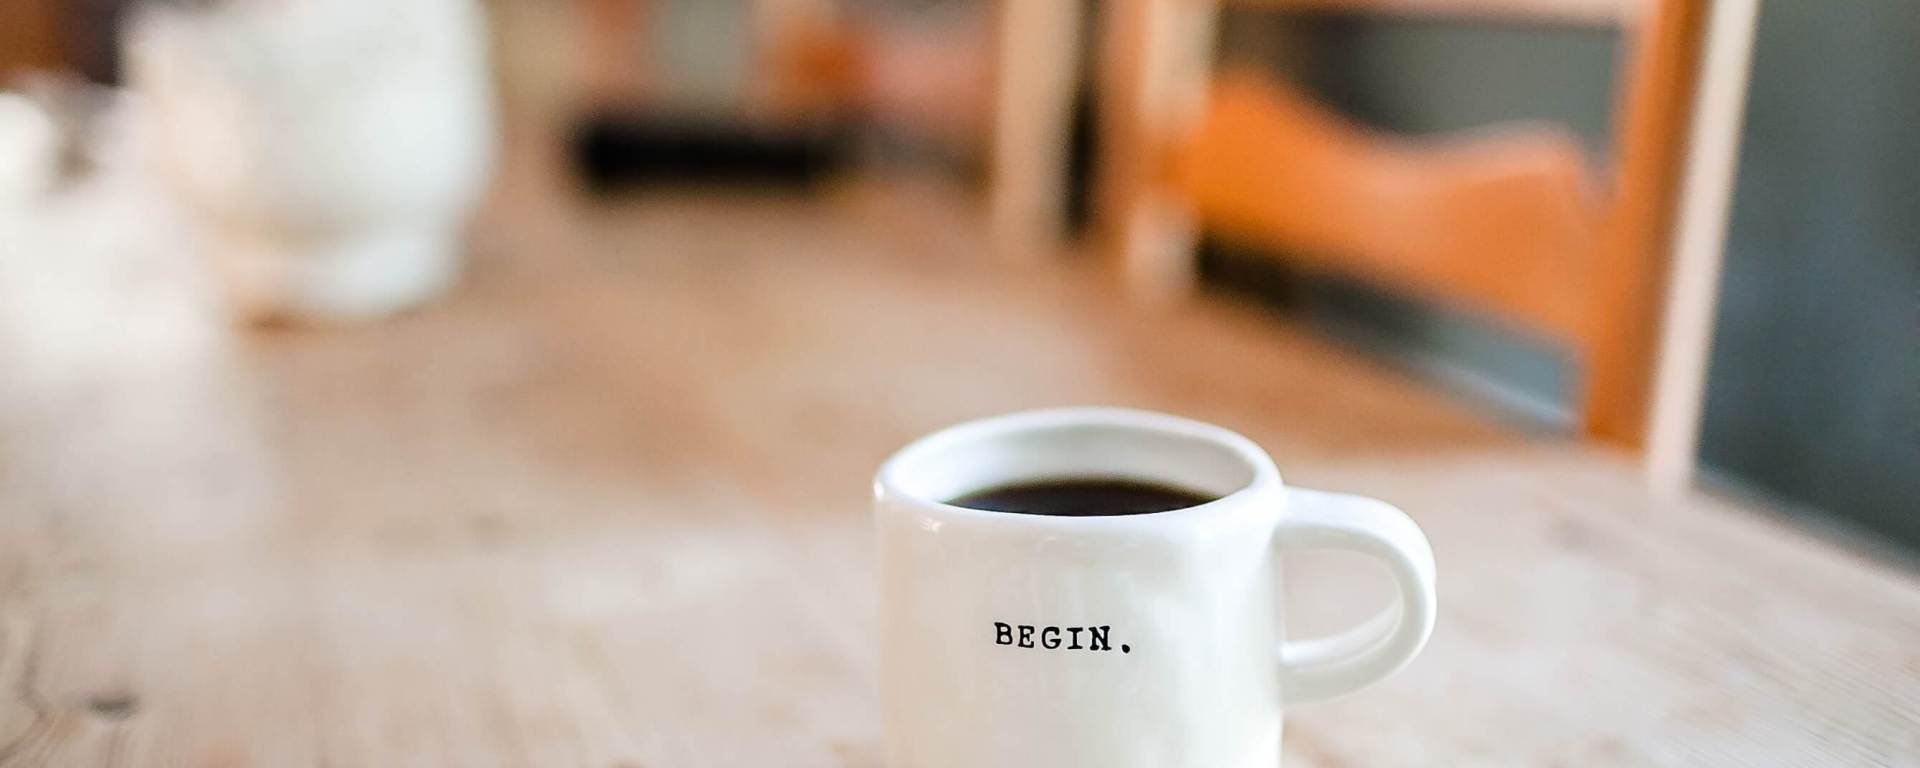 A coffee mug that says Begin. on a table